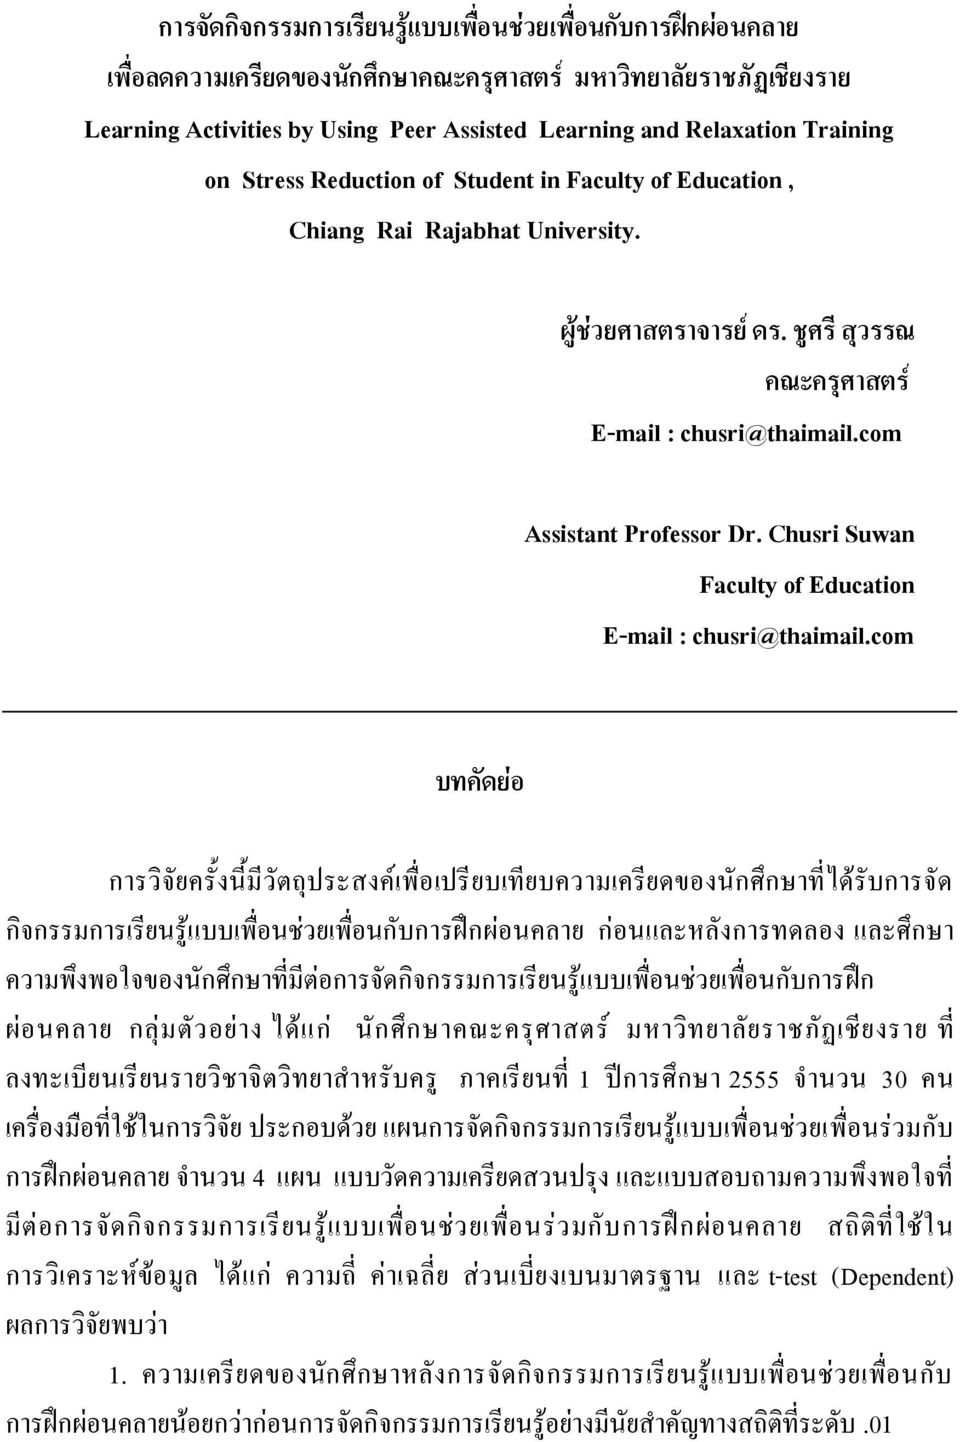 Chusri Suwan Faculty of Education E-mail : chusri@thaimail.